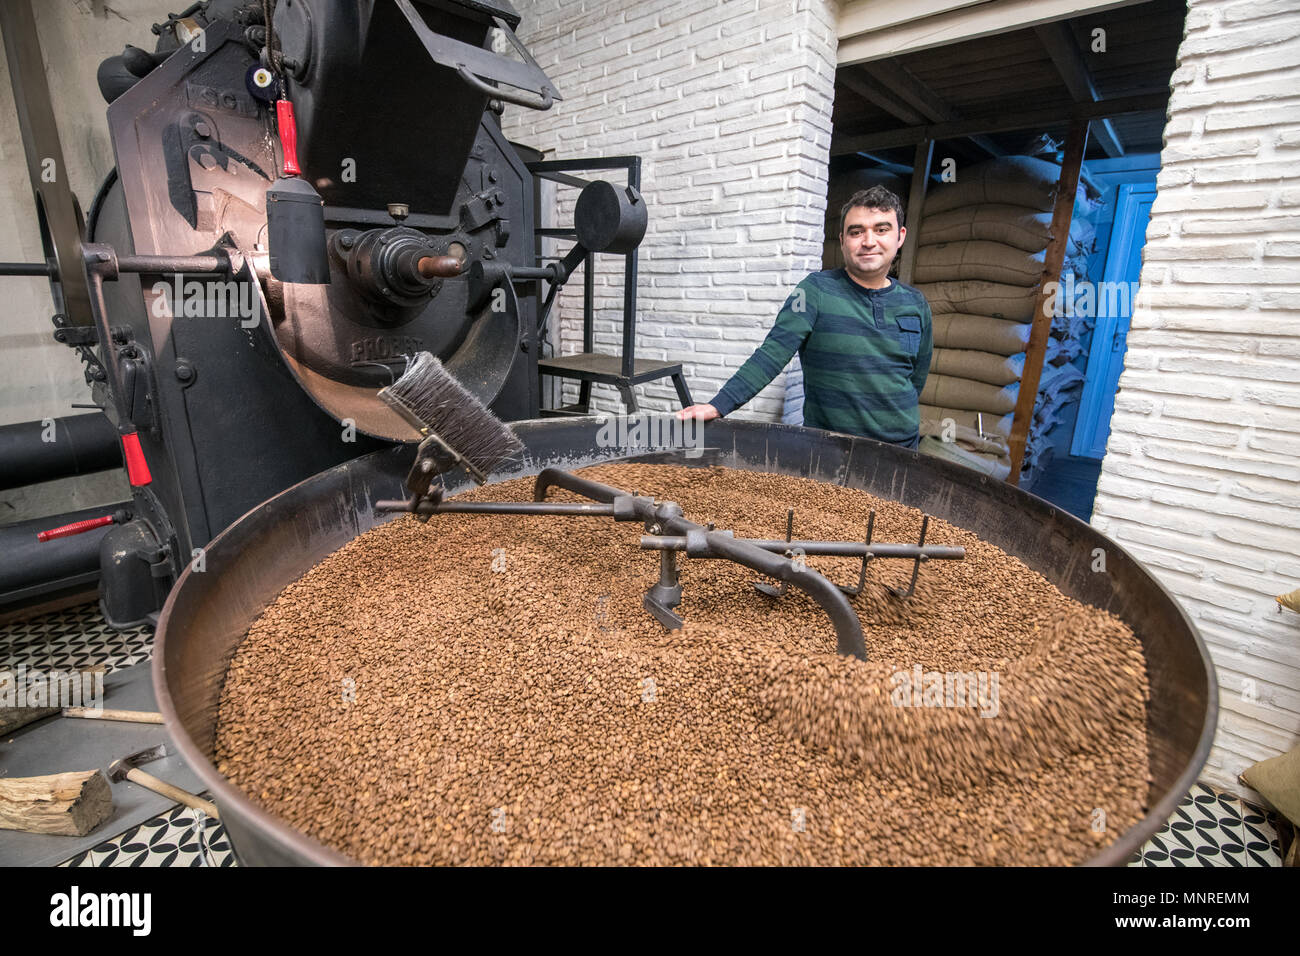 Adult male leans against coffee bean roaster as a mechanical arm slowly rotates freshly roasted coffee beans to cool them down, Istanbul, Turkey. - Stock Image